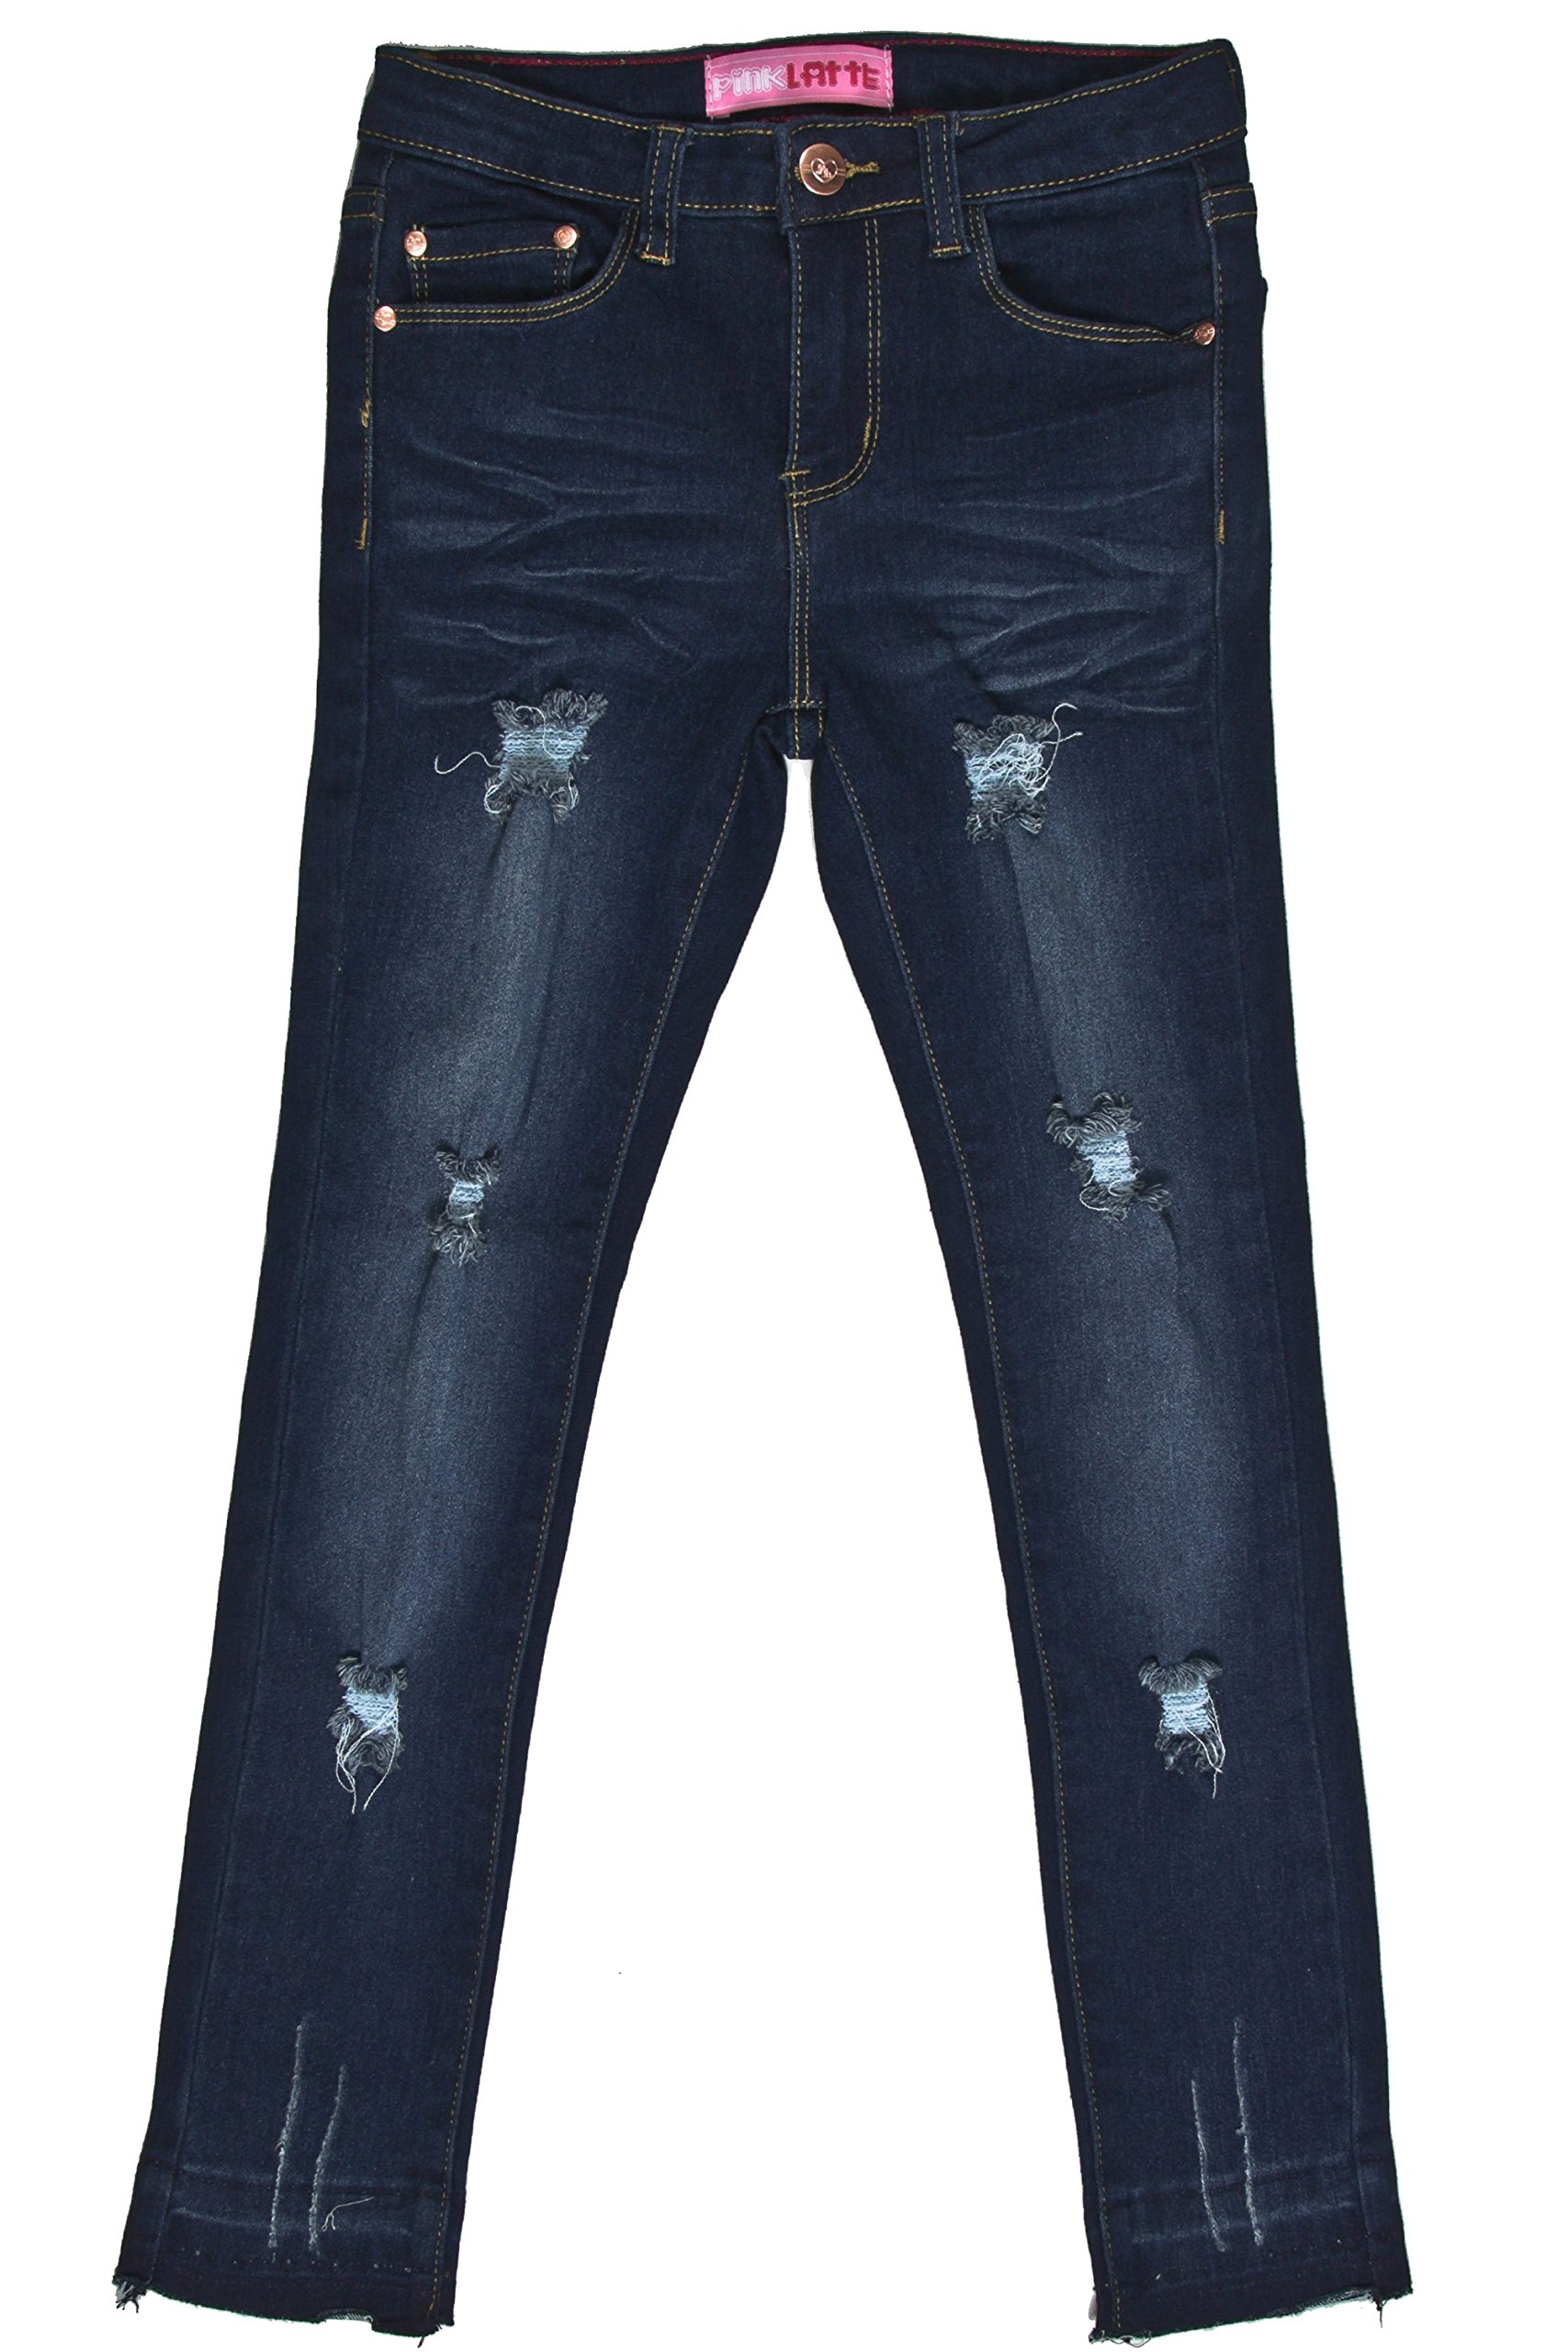 GDP-17-877B - Girls' Stretch 5 Pockets Basic Premium Ripped Skinny Jeans in Washed Blue Size 14